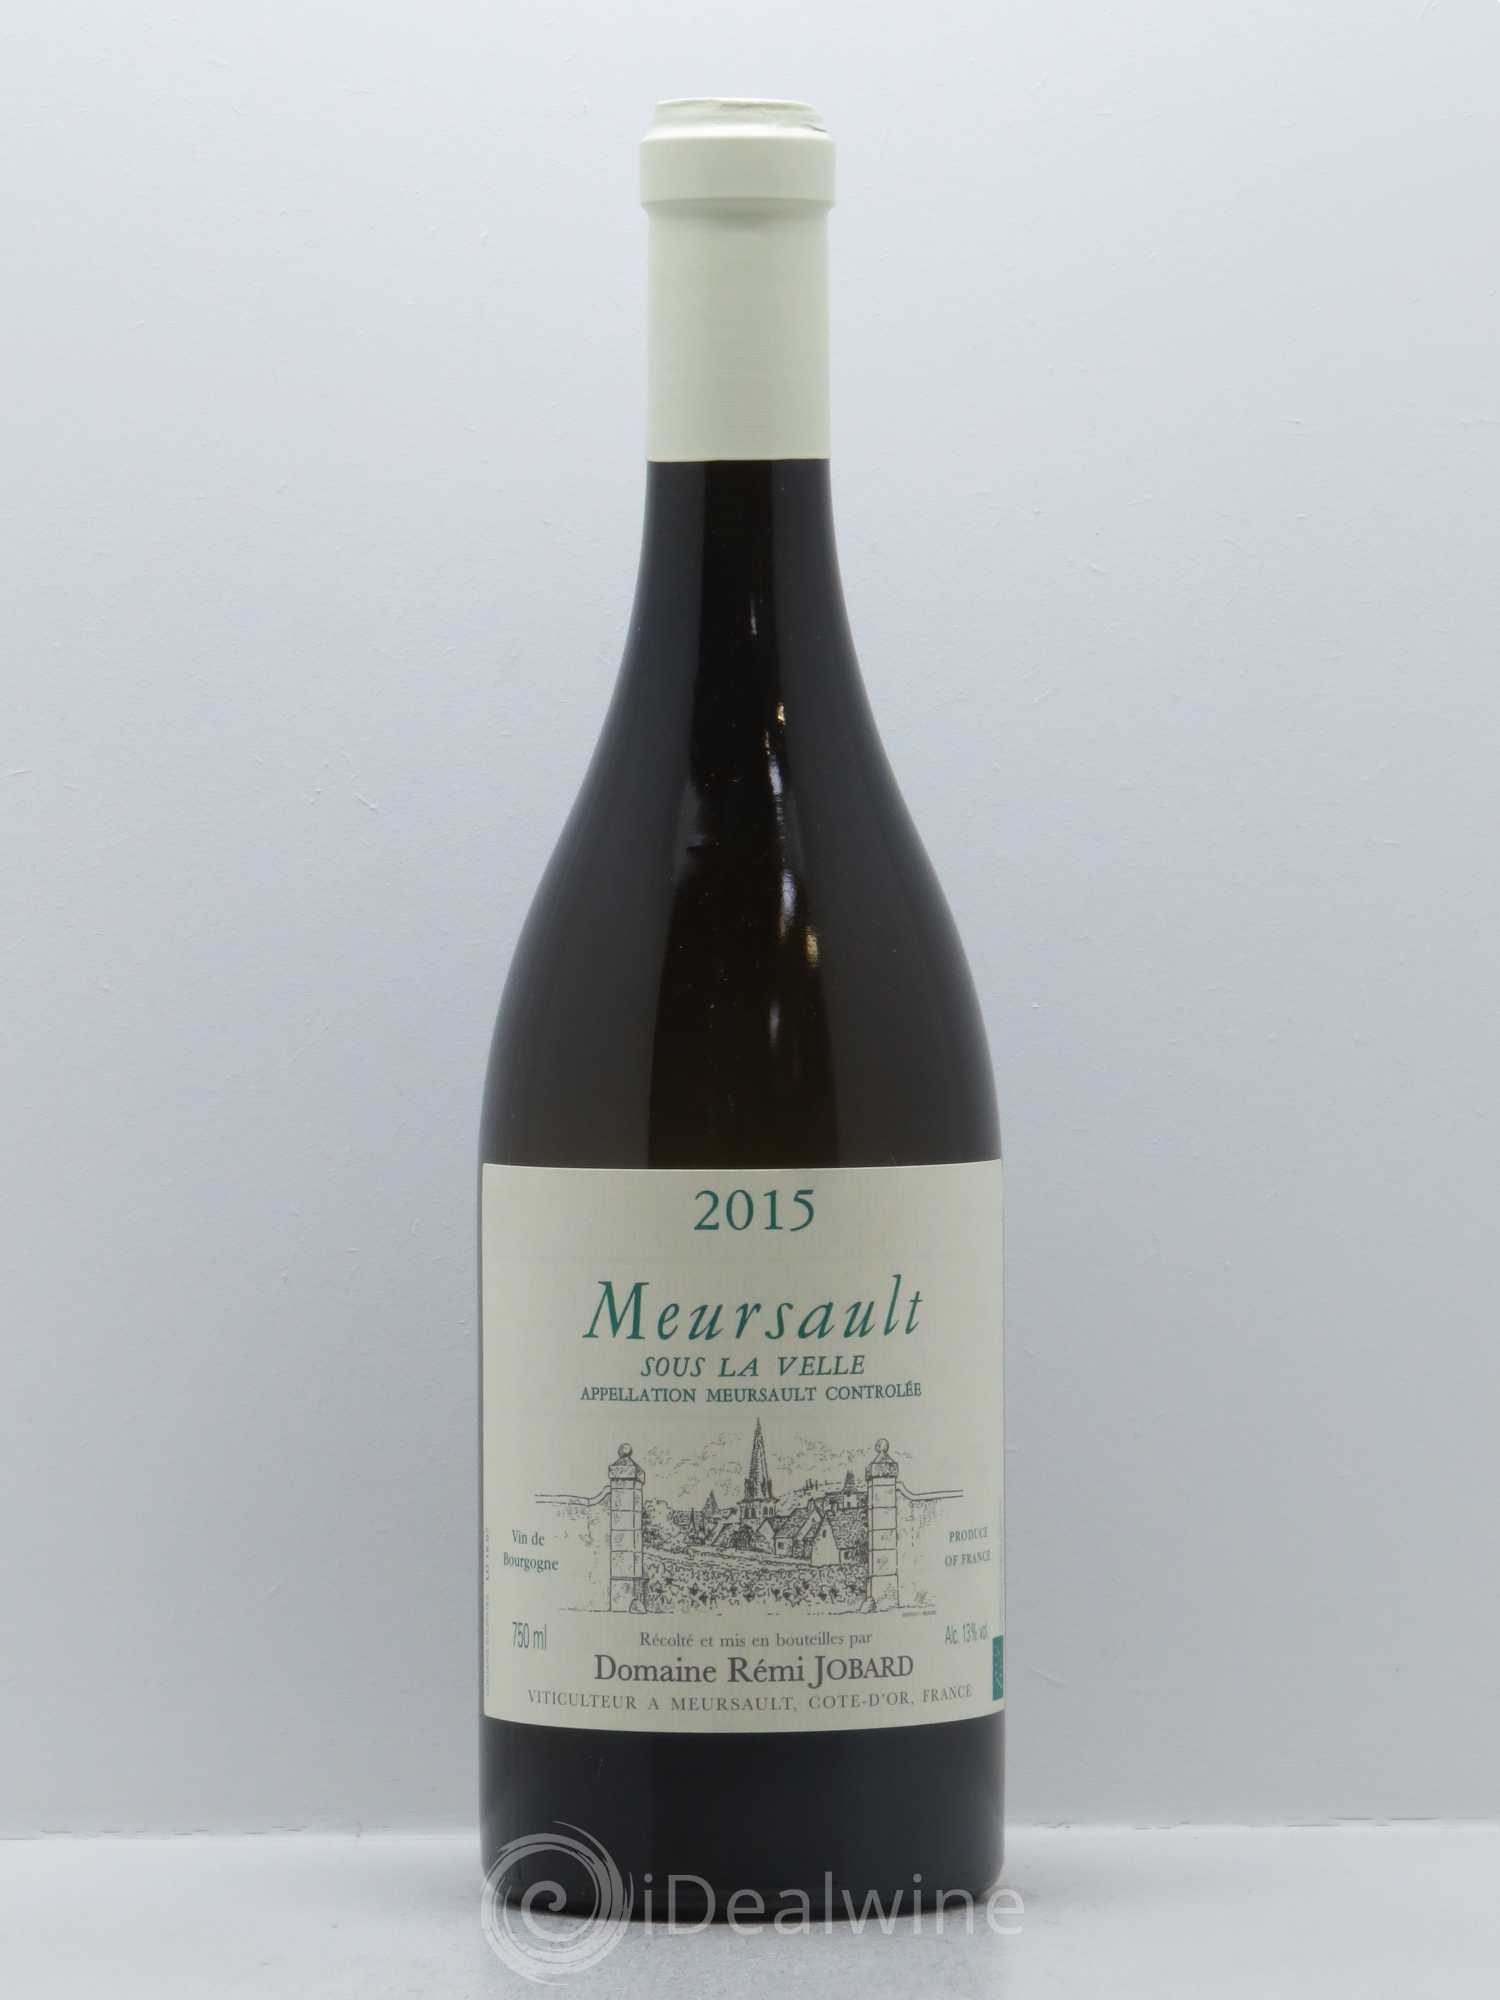 Meursault Sous la Velle Rémi Jobard (Domaine)  2015 - Lot of 1 Bottle